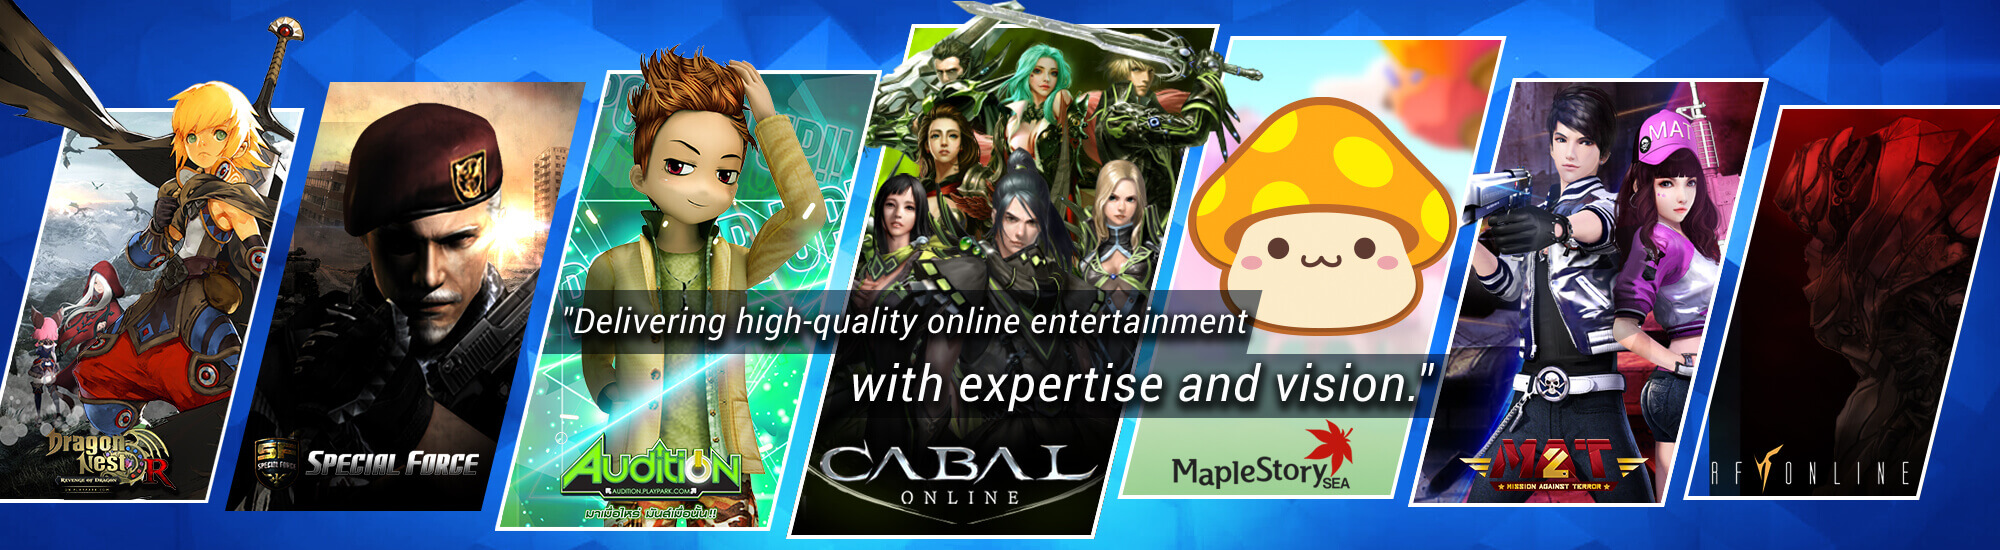 Asiasoft Corporation - The Online Entertainment Leader in Southeast Asia